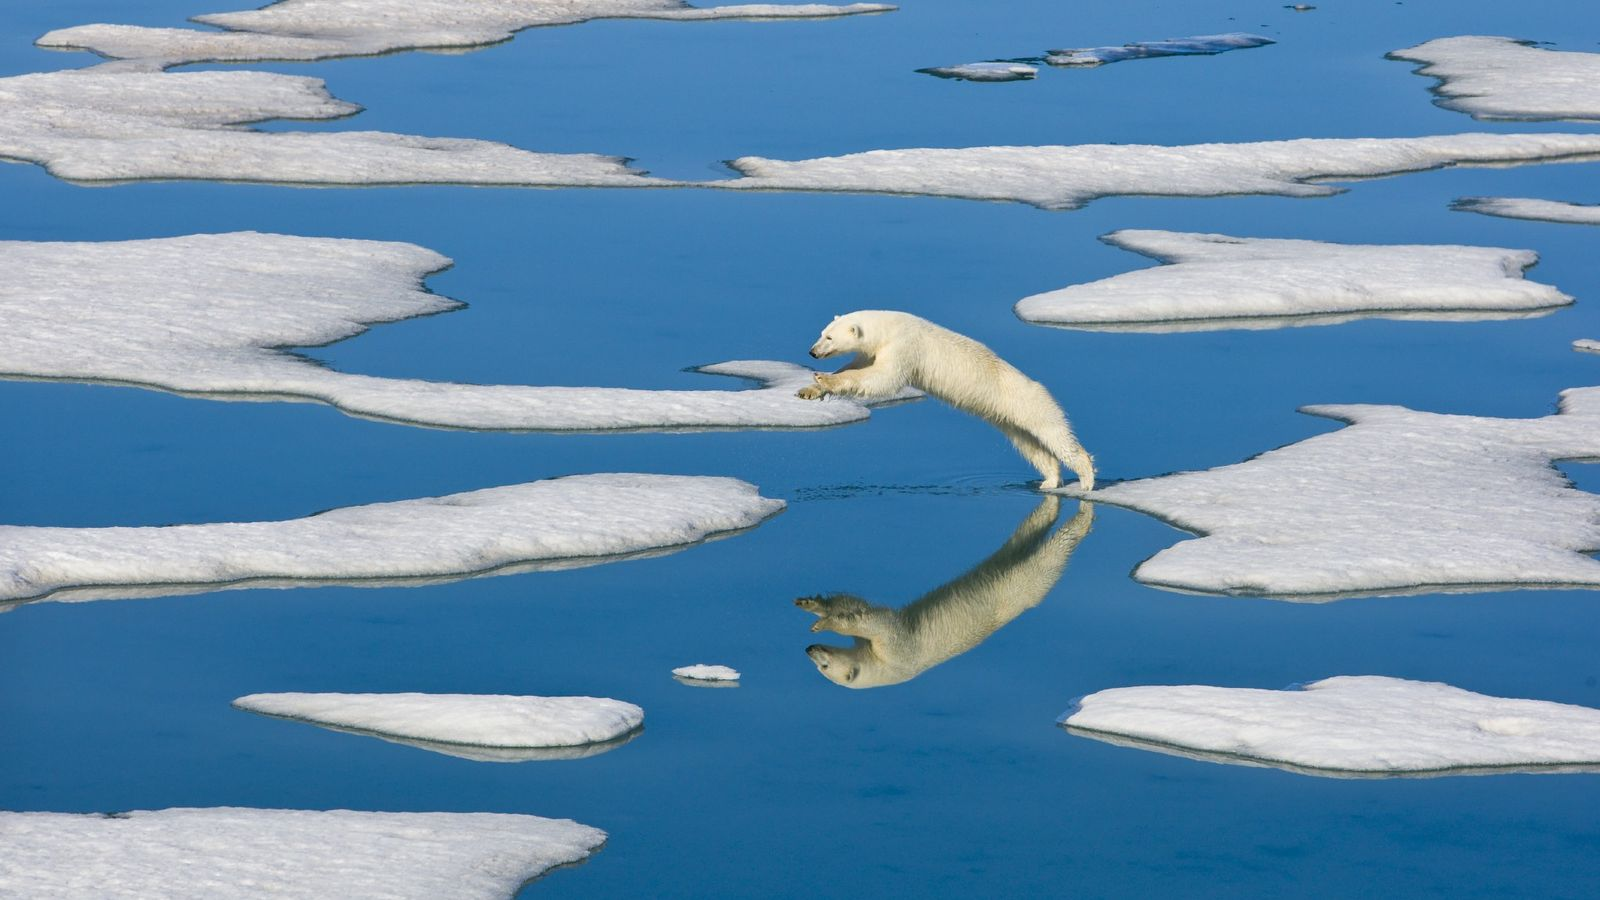 A polar bear jumps between ice floes near the island of Spitsbergen in Norway in 2010.